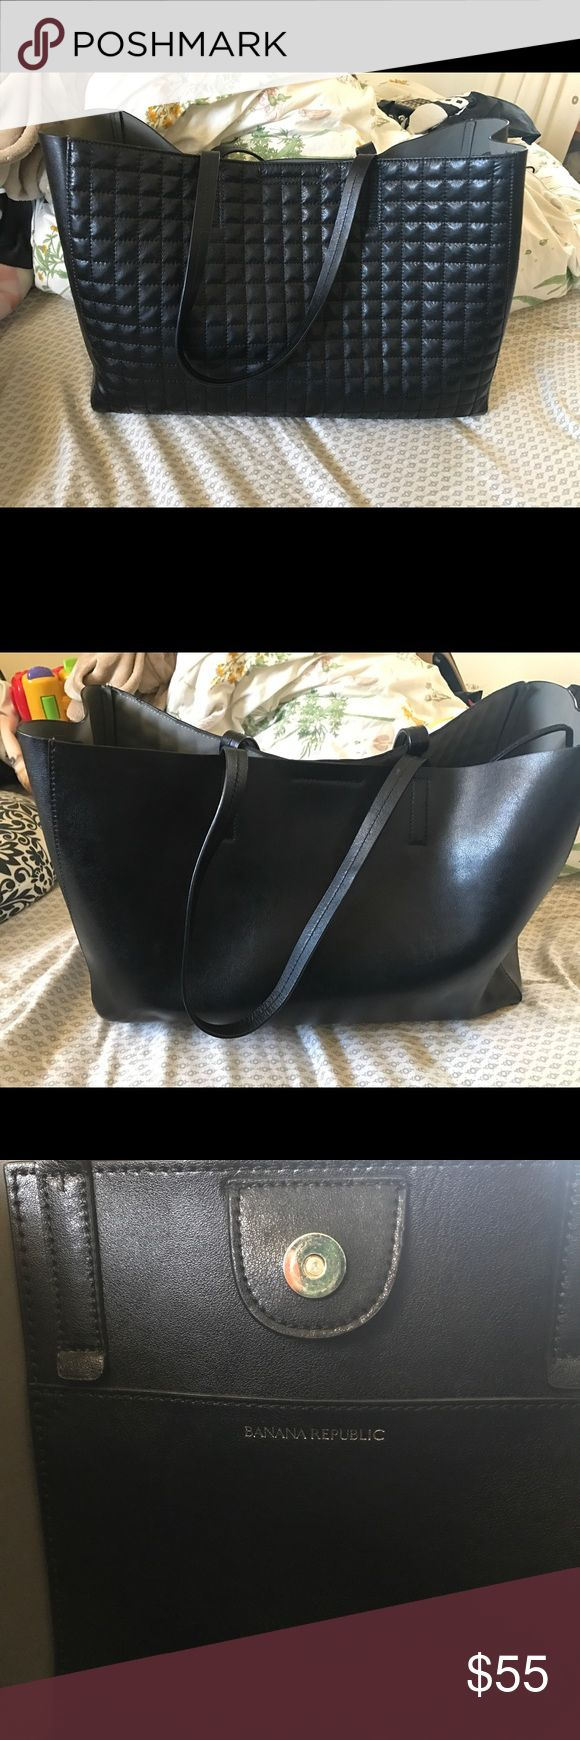 Banana Republic Handbag Black banana republic handbag with raise front details. Split hide cow leather. Used once. Pretty large to fit every girls needs. NO TRADES! Banana Republic Bags